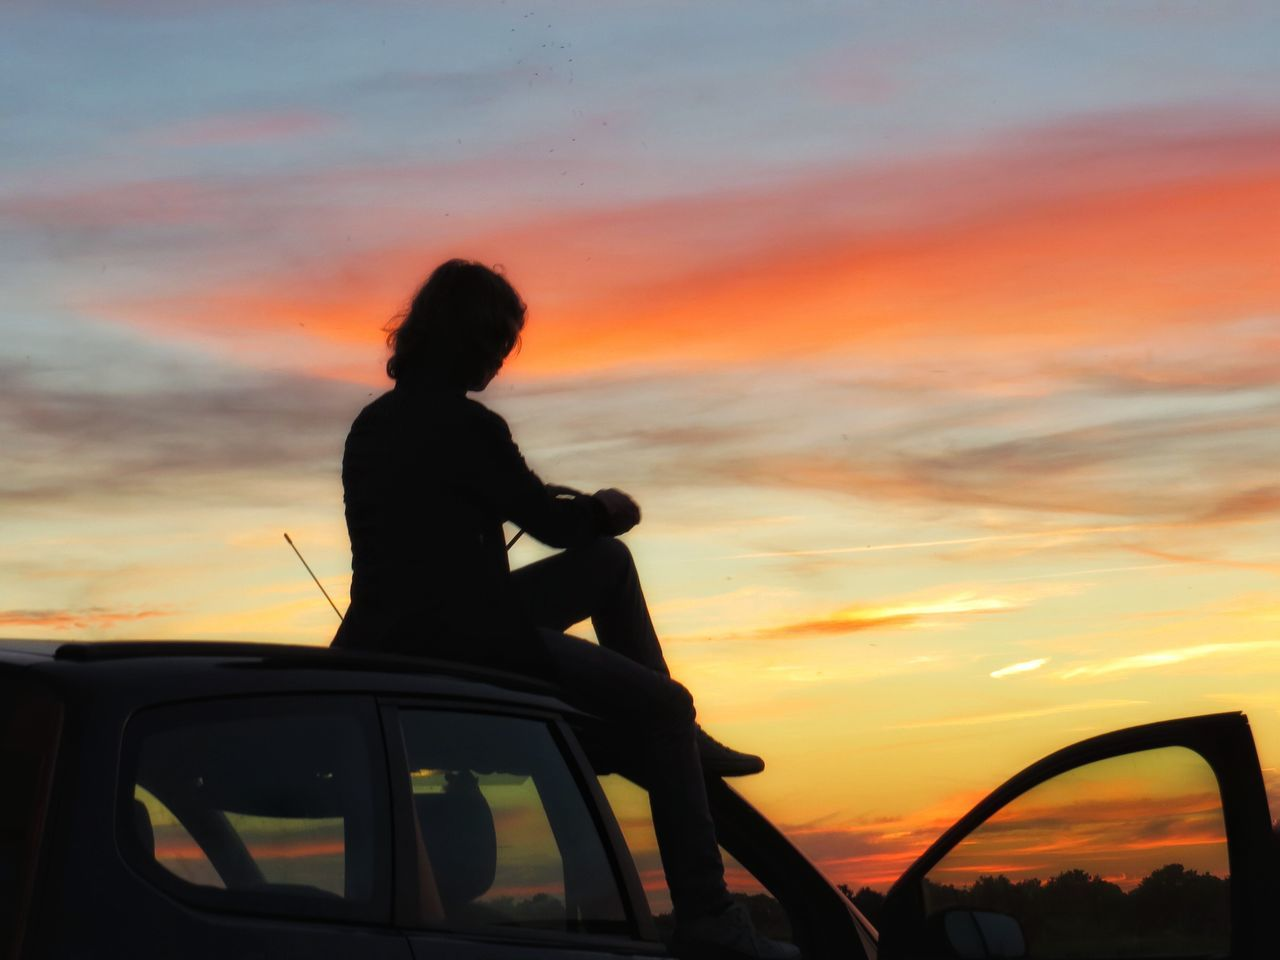 Silhouette of man against cloudy sky at sunset